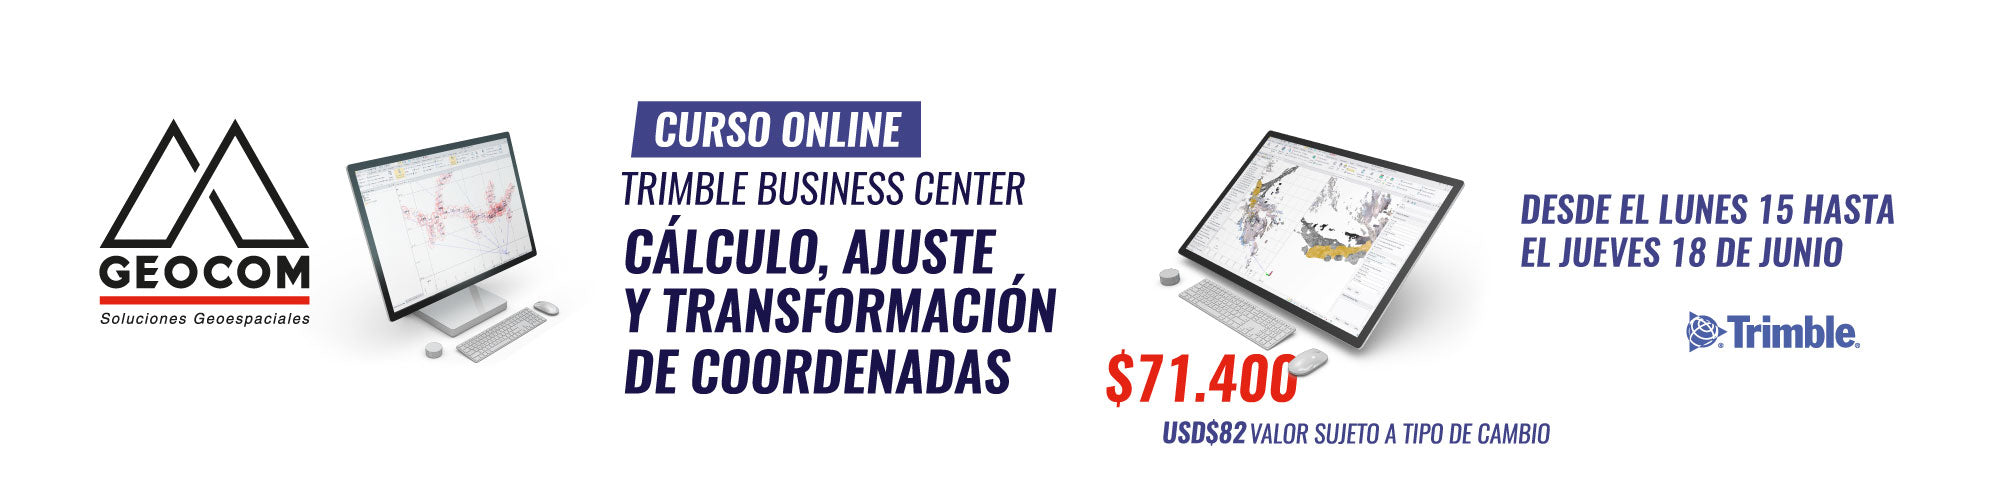 Curso Online Trimble Business Center | Cálculo, ajuste y transformación de coordenadas